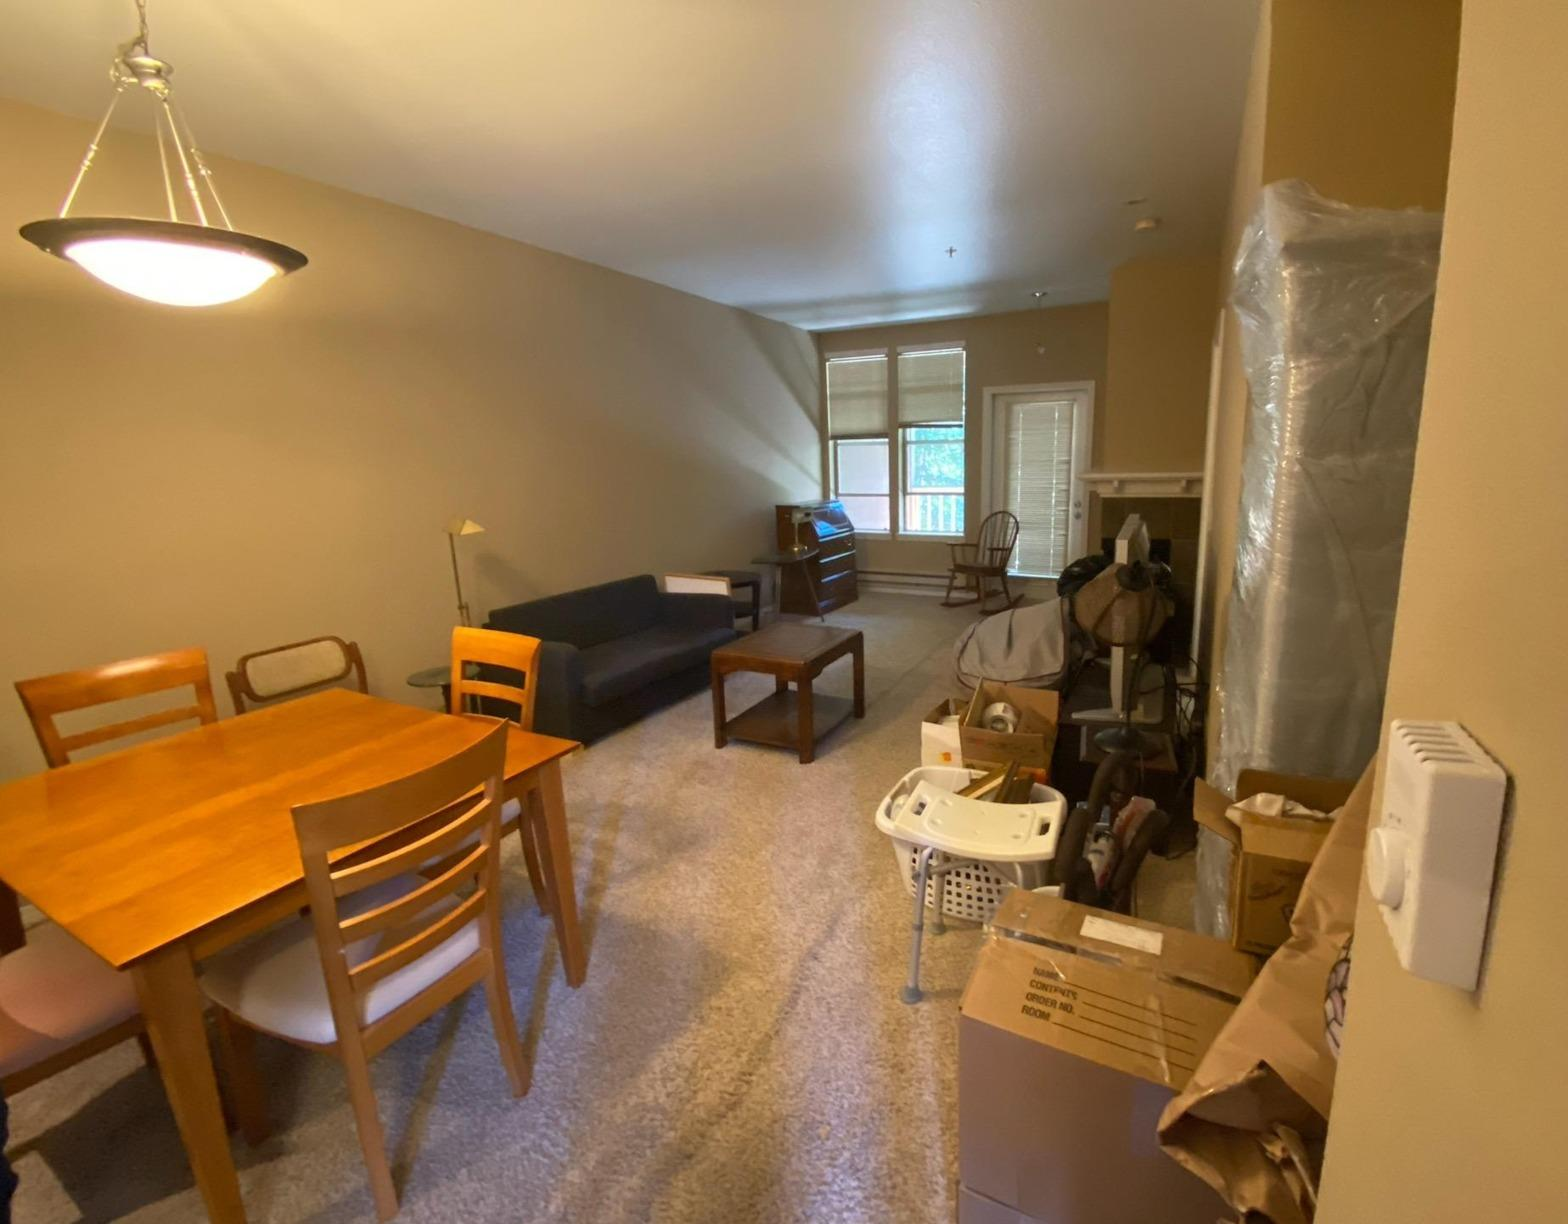 Estate Cleanout Services in Issaquah, WA - Before Photo